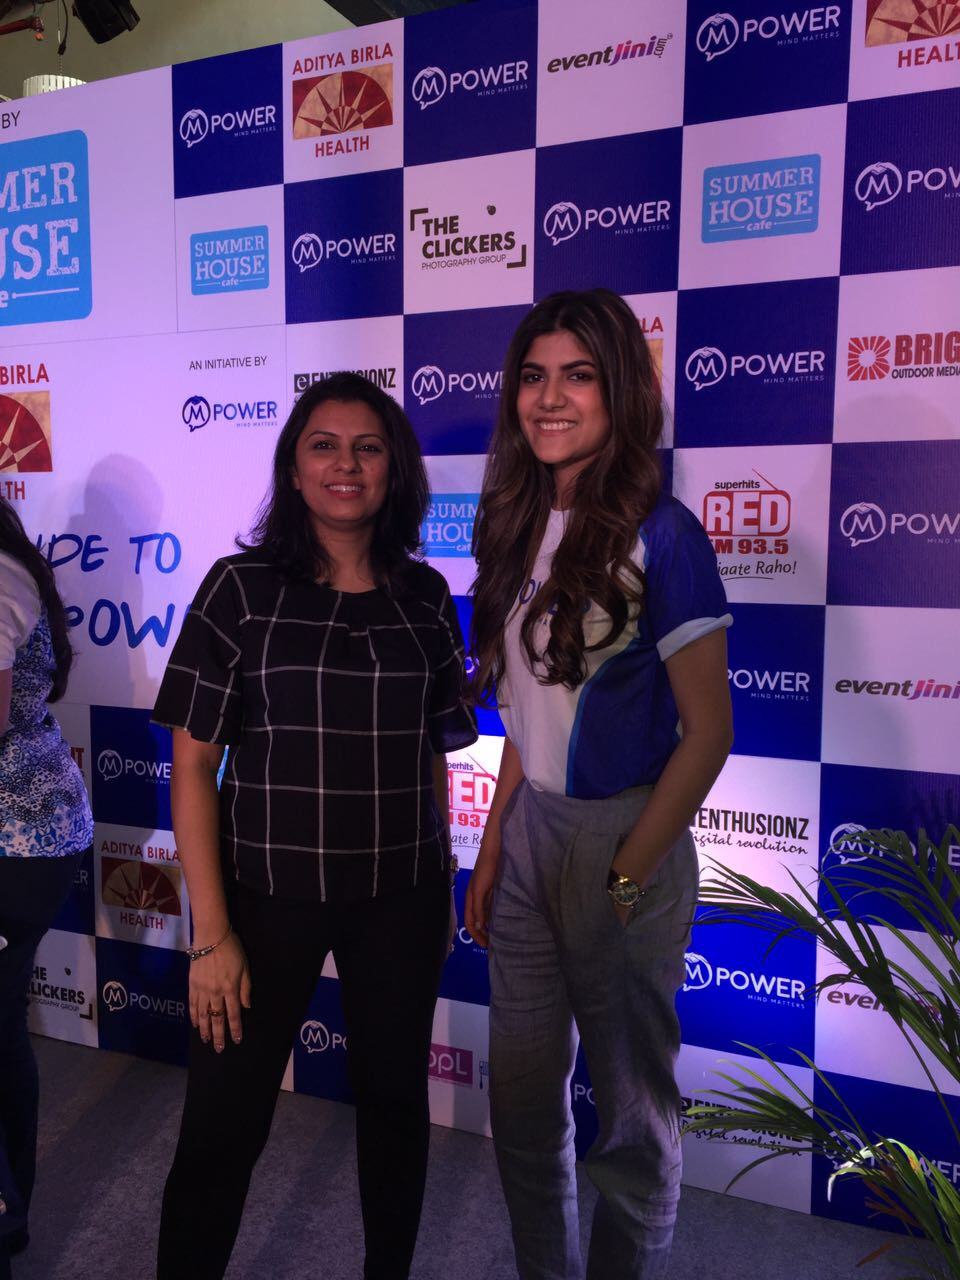 Maximus Announces Aditya Birla Health Ride To MPower 2017 with Neerja & Ananya Birla